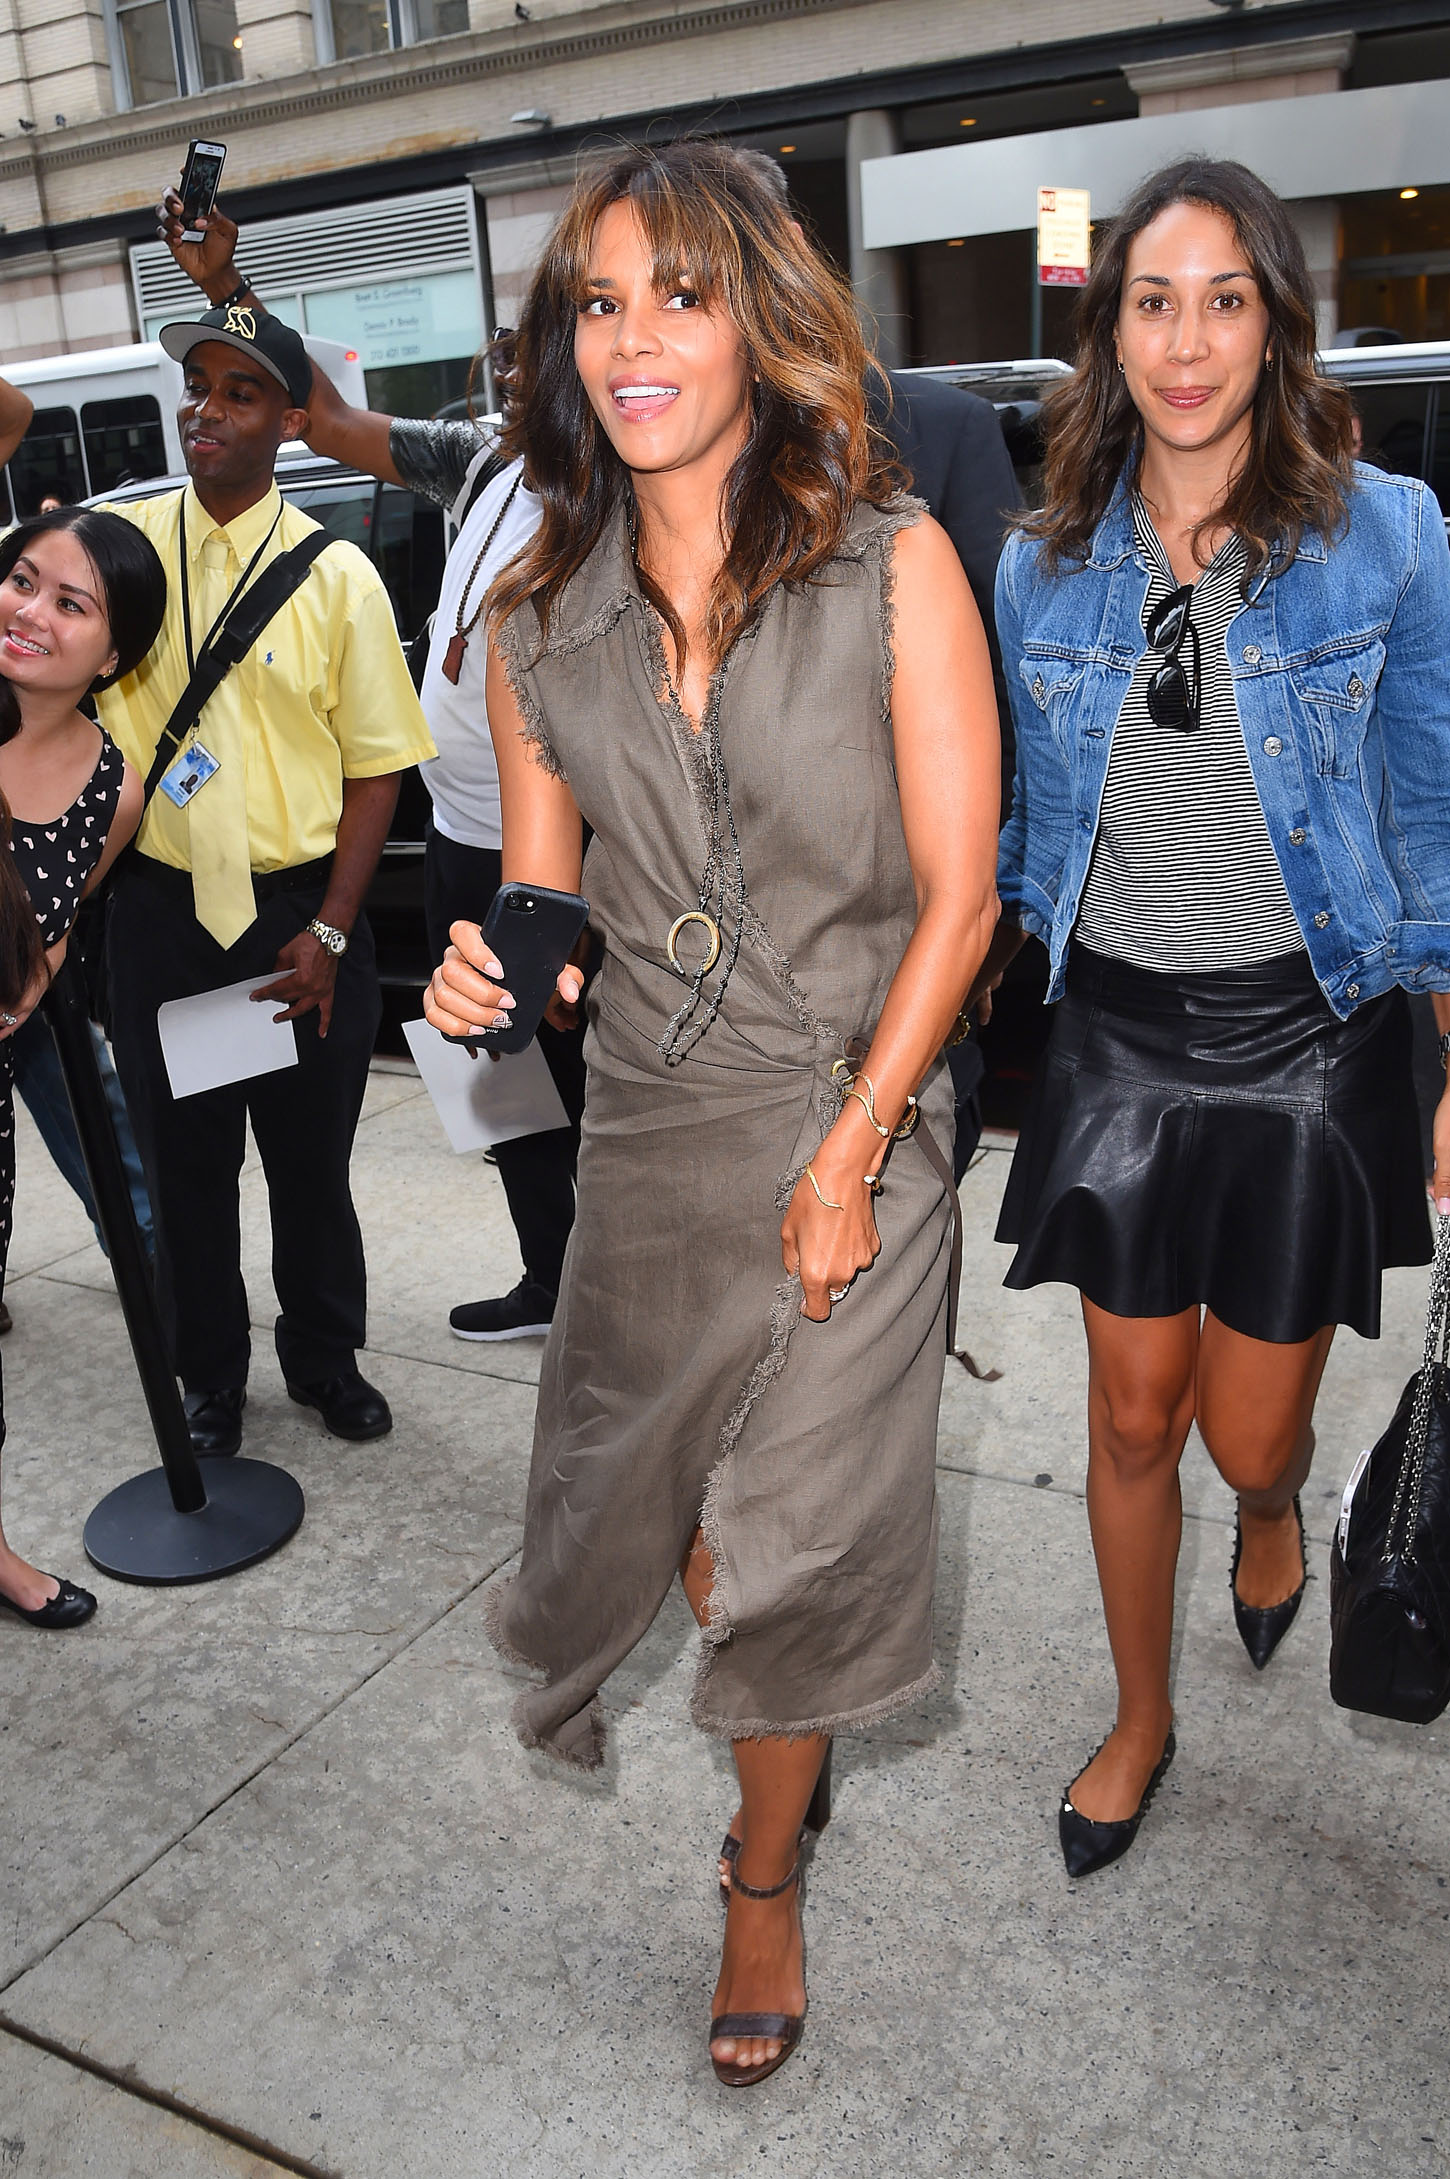 Halle Berry out in Midtown NYC <P> Pictured: Halle Berry <B>Ref: SPL1549042  020817  </B><BR/> Picture by: NPEx / Splash News<BR/> </P><P> <B>Splash News and Pictures</B><BR/> Los Angeles:310-821-2666<BR/> New York:212-619-2666<BR/> London:870-934-2666<BR/> <span id=